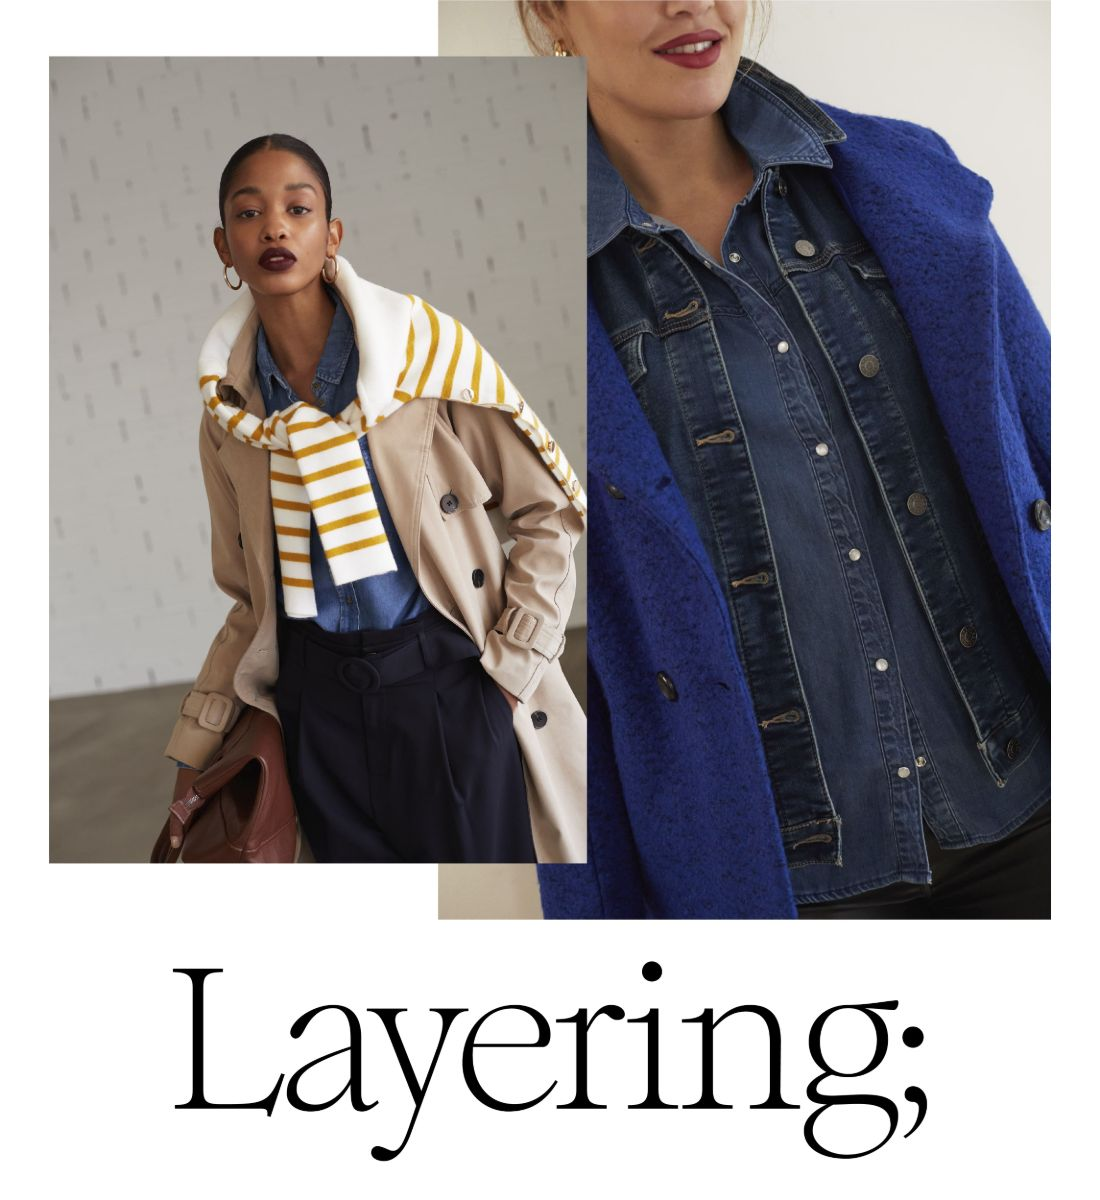 What Exactly is Layering?